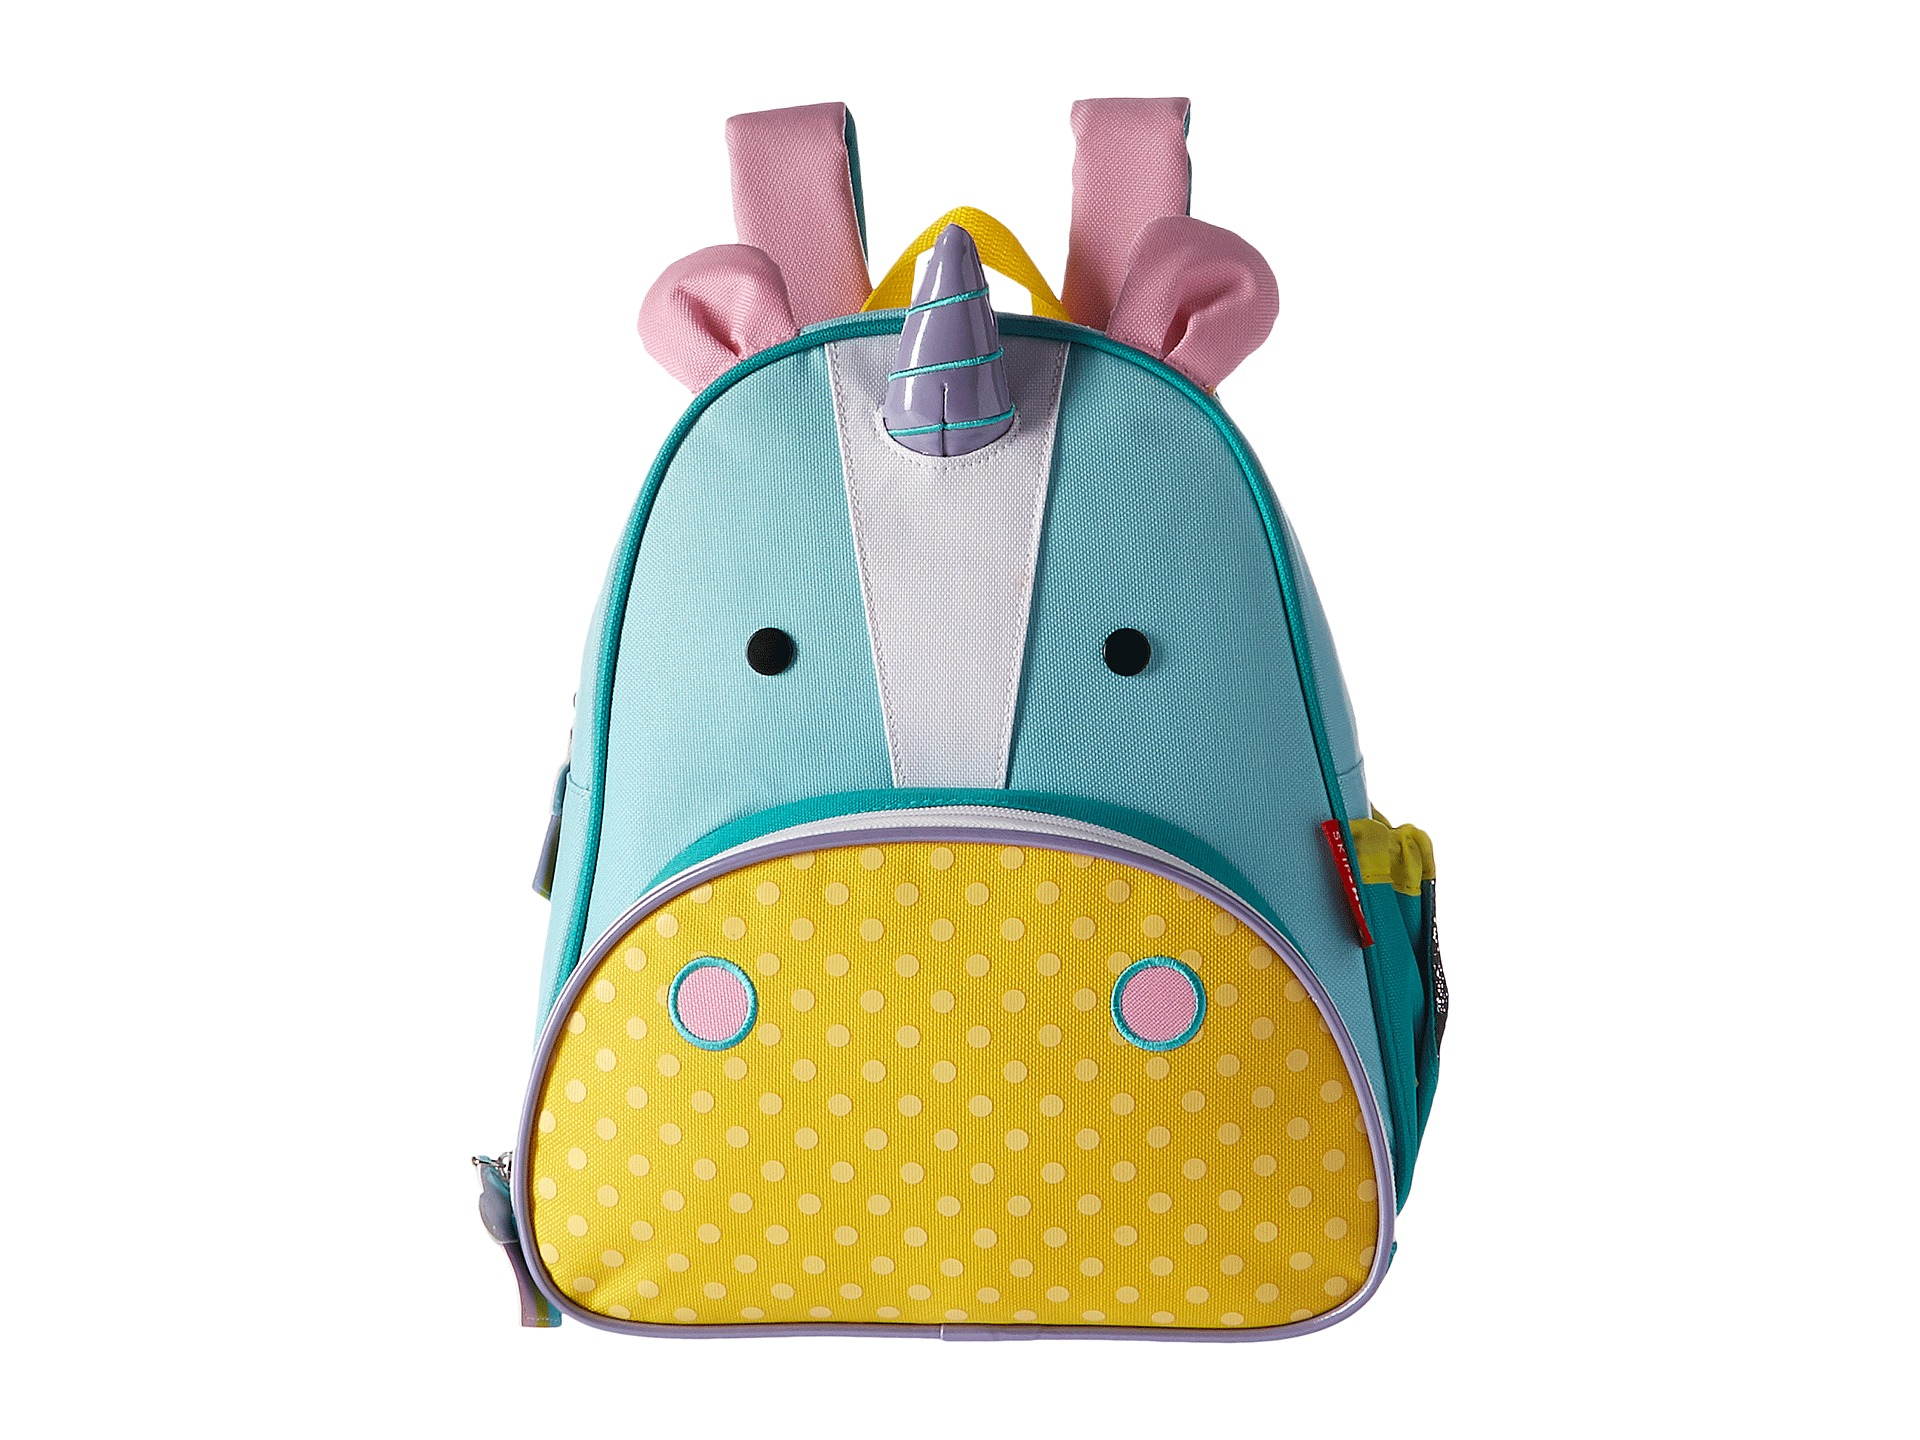 most popular kids backpacks Backpack Tools